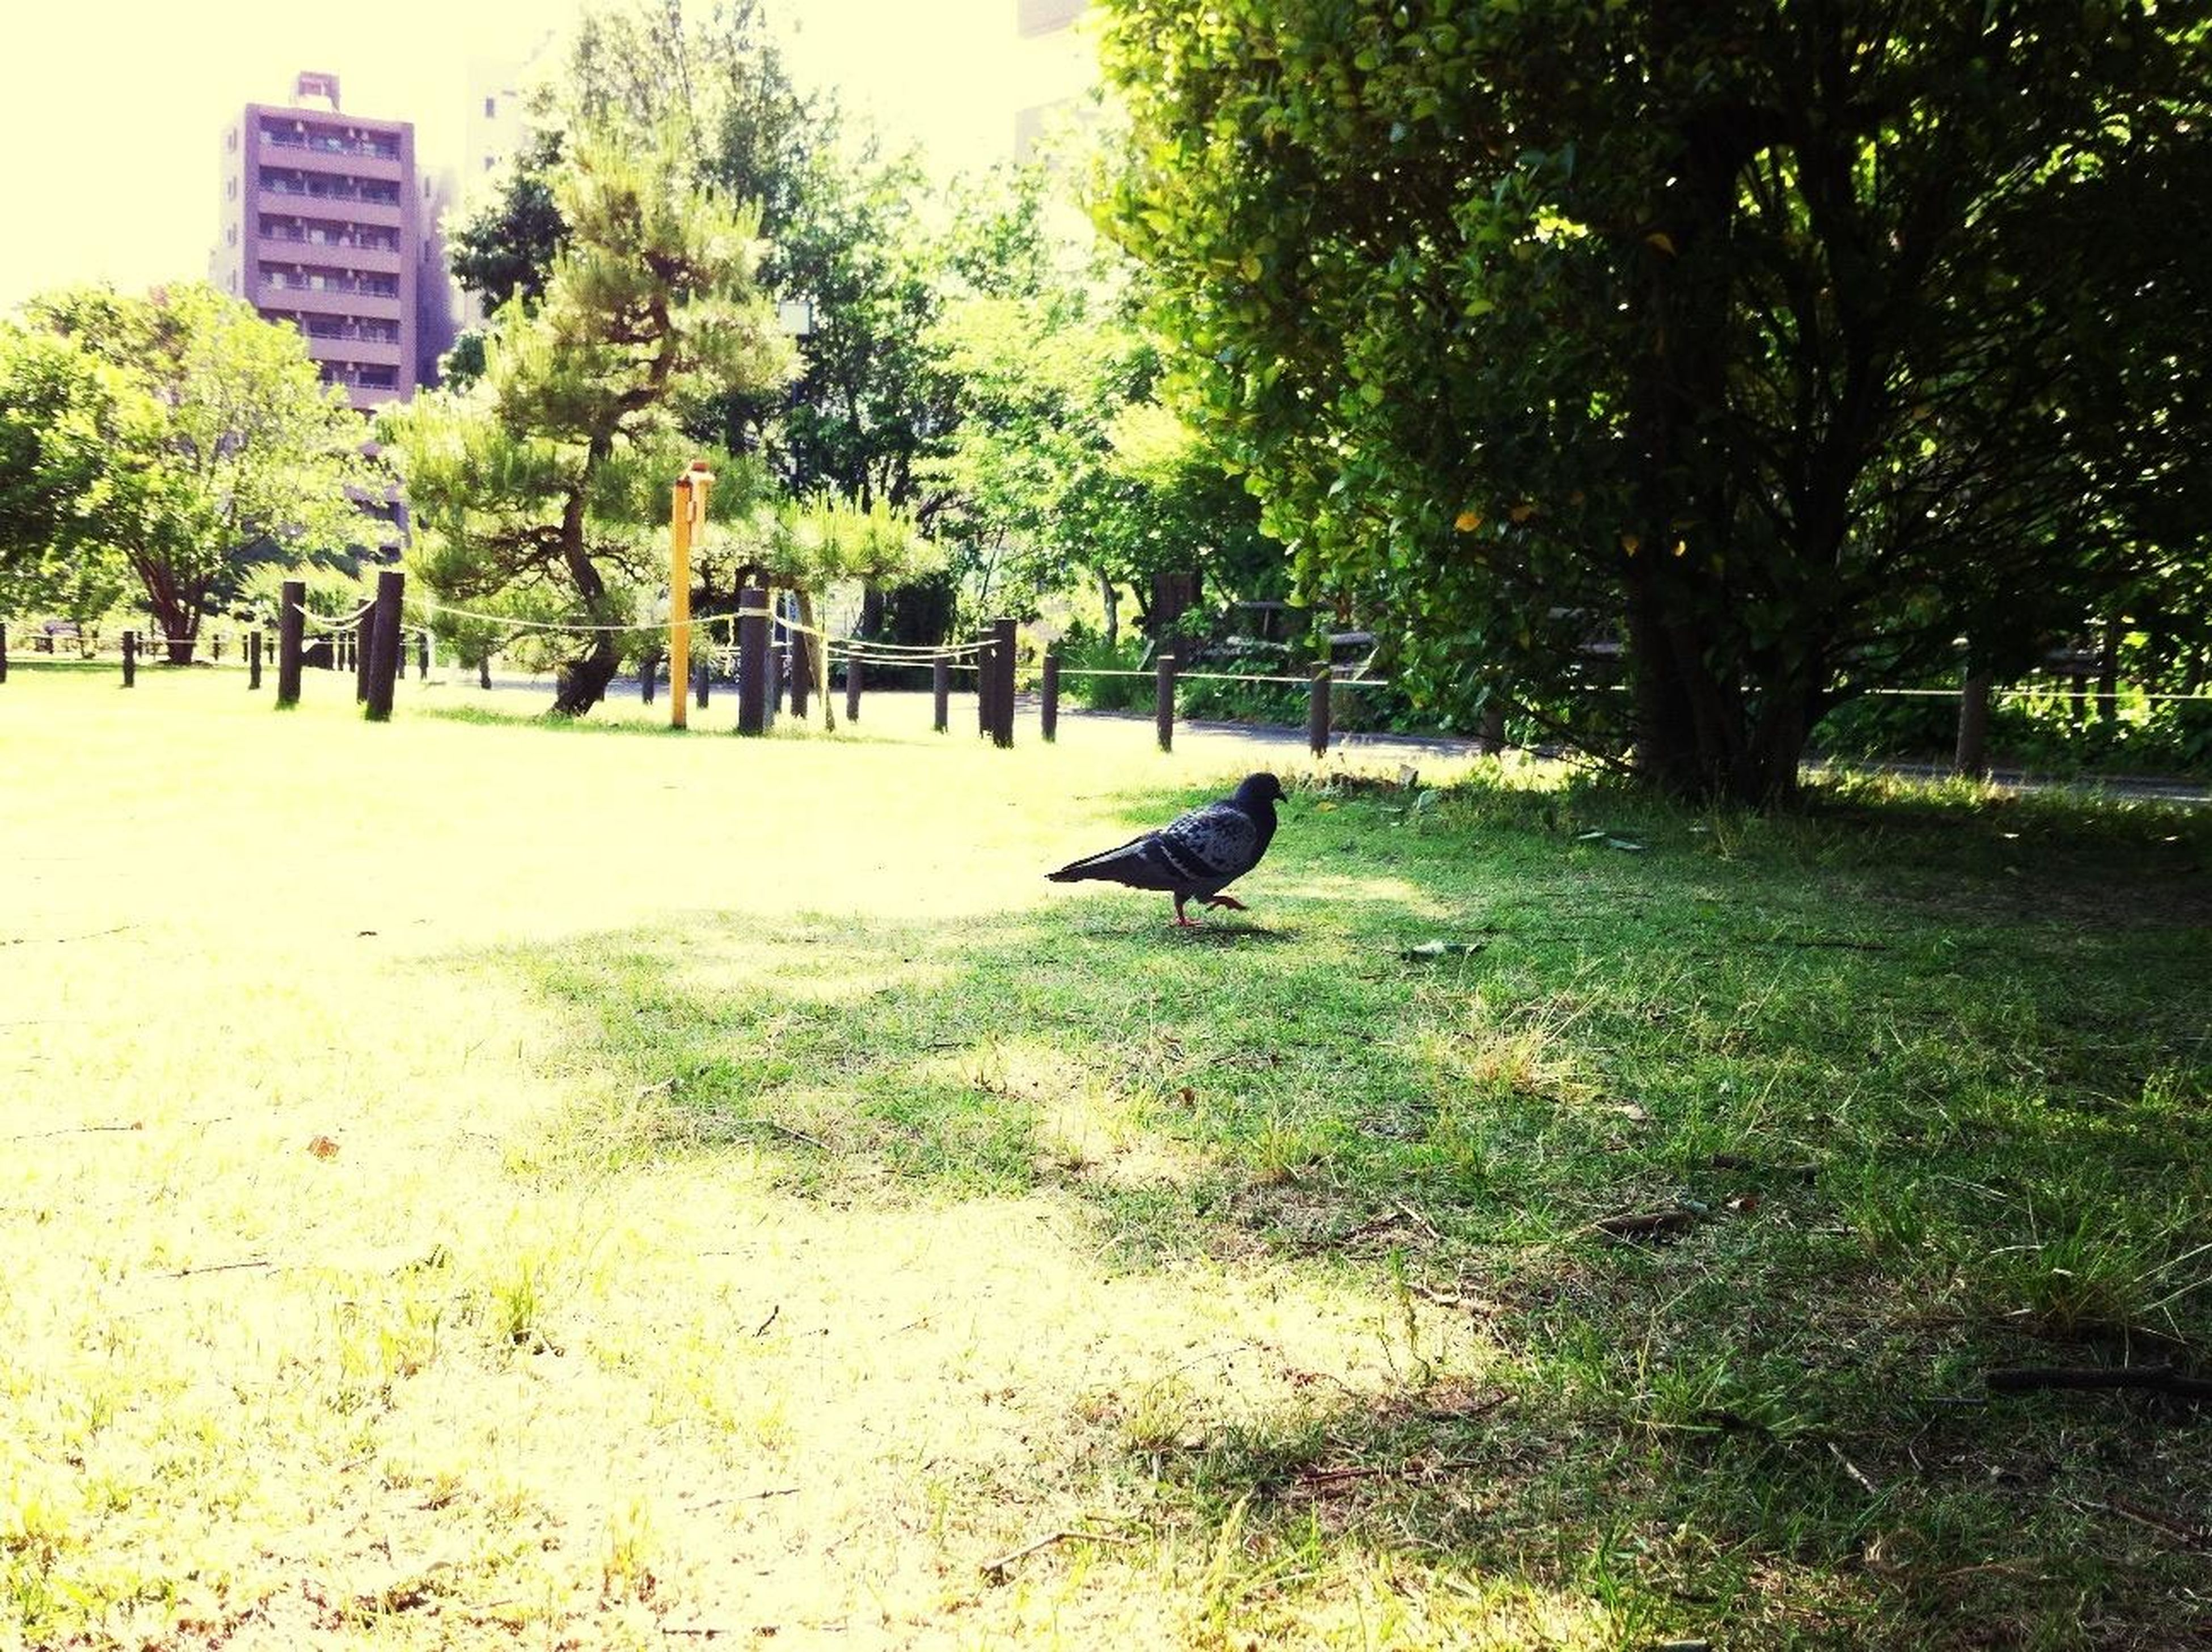 animal themes, tree, one animal, animals in the wild, wildlife, mammal, domestic animals, bird, grass, park - man made space, building exterior, pets, green color, nature, growth, sunlight, built structure, architecture, day, field